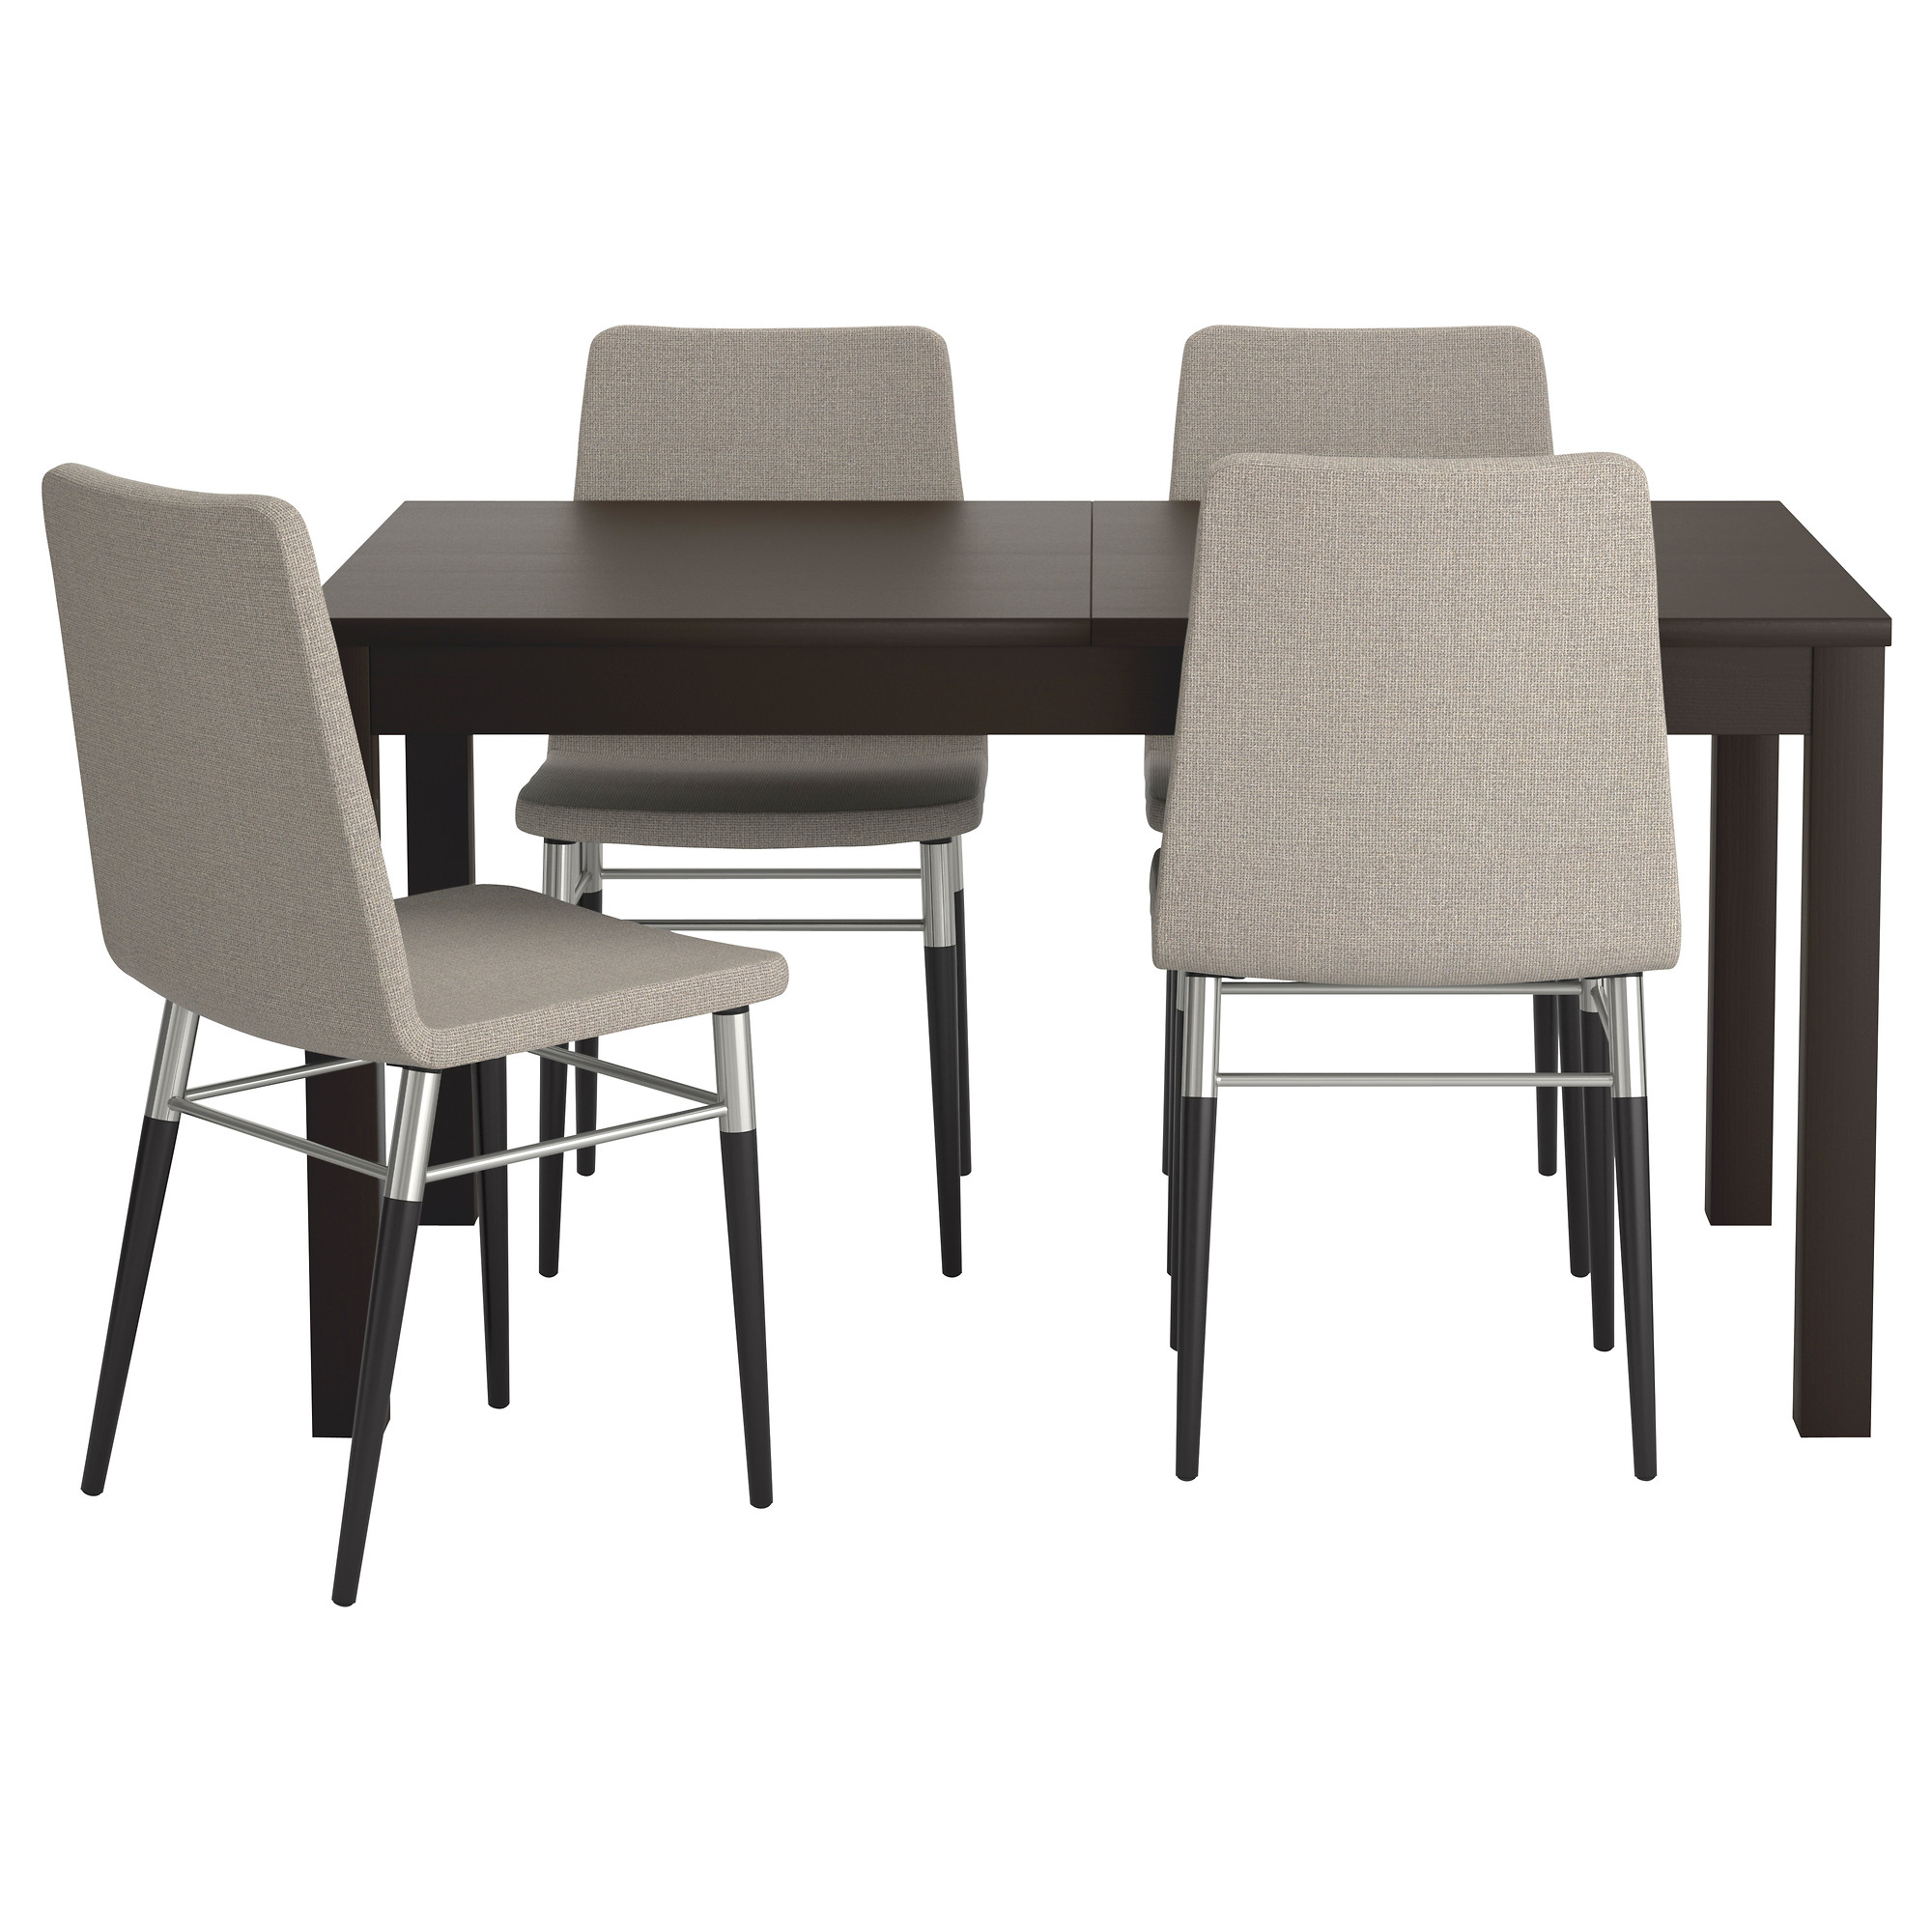 BJURSTA PREBEN Table and 4 chairs IKEA